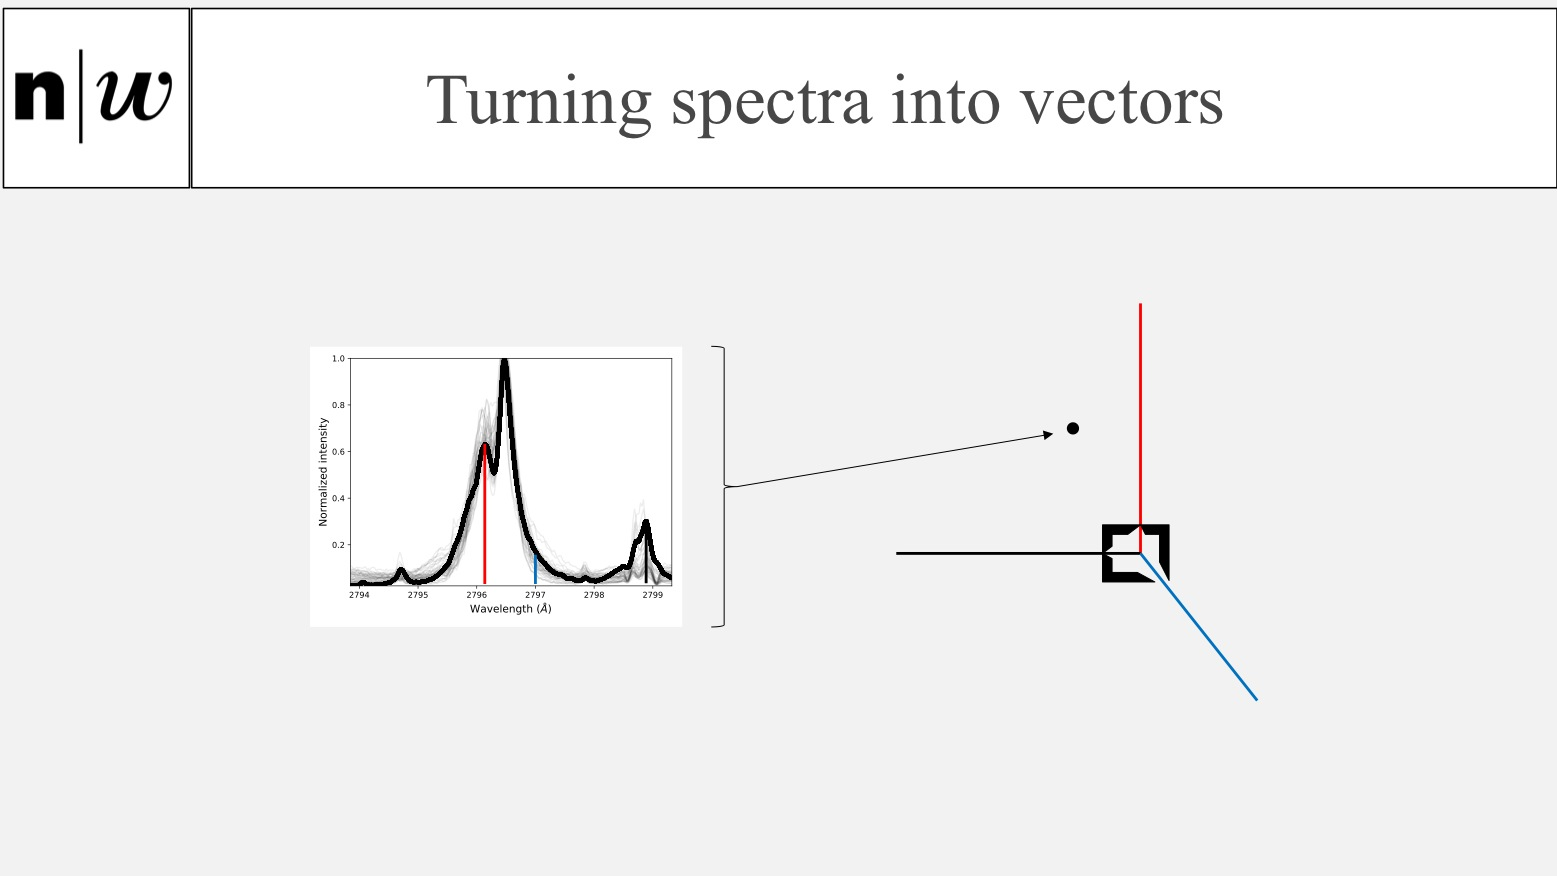 Turning spectra into vectors